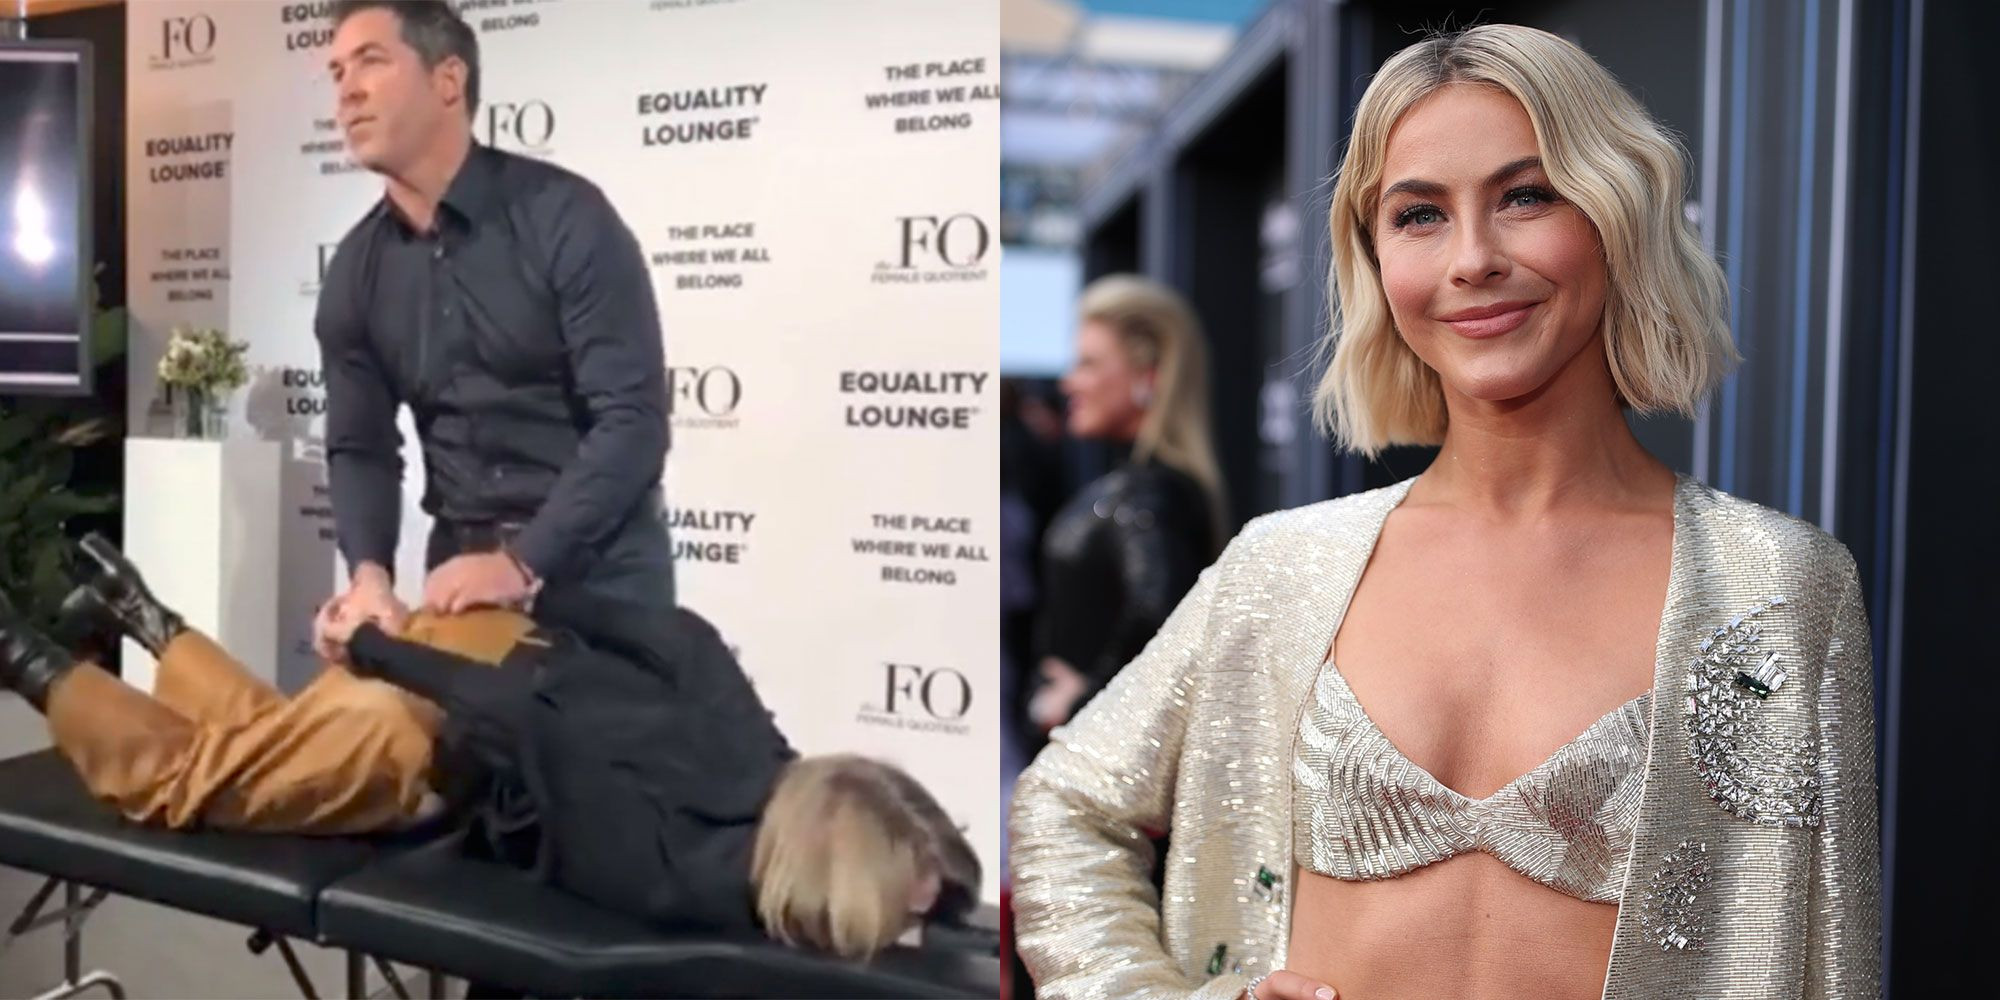 You Can't Unsee This Crazy Video Of Julianne Hough Shrieking During Physical Therapy